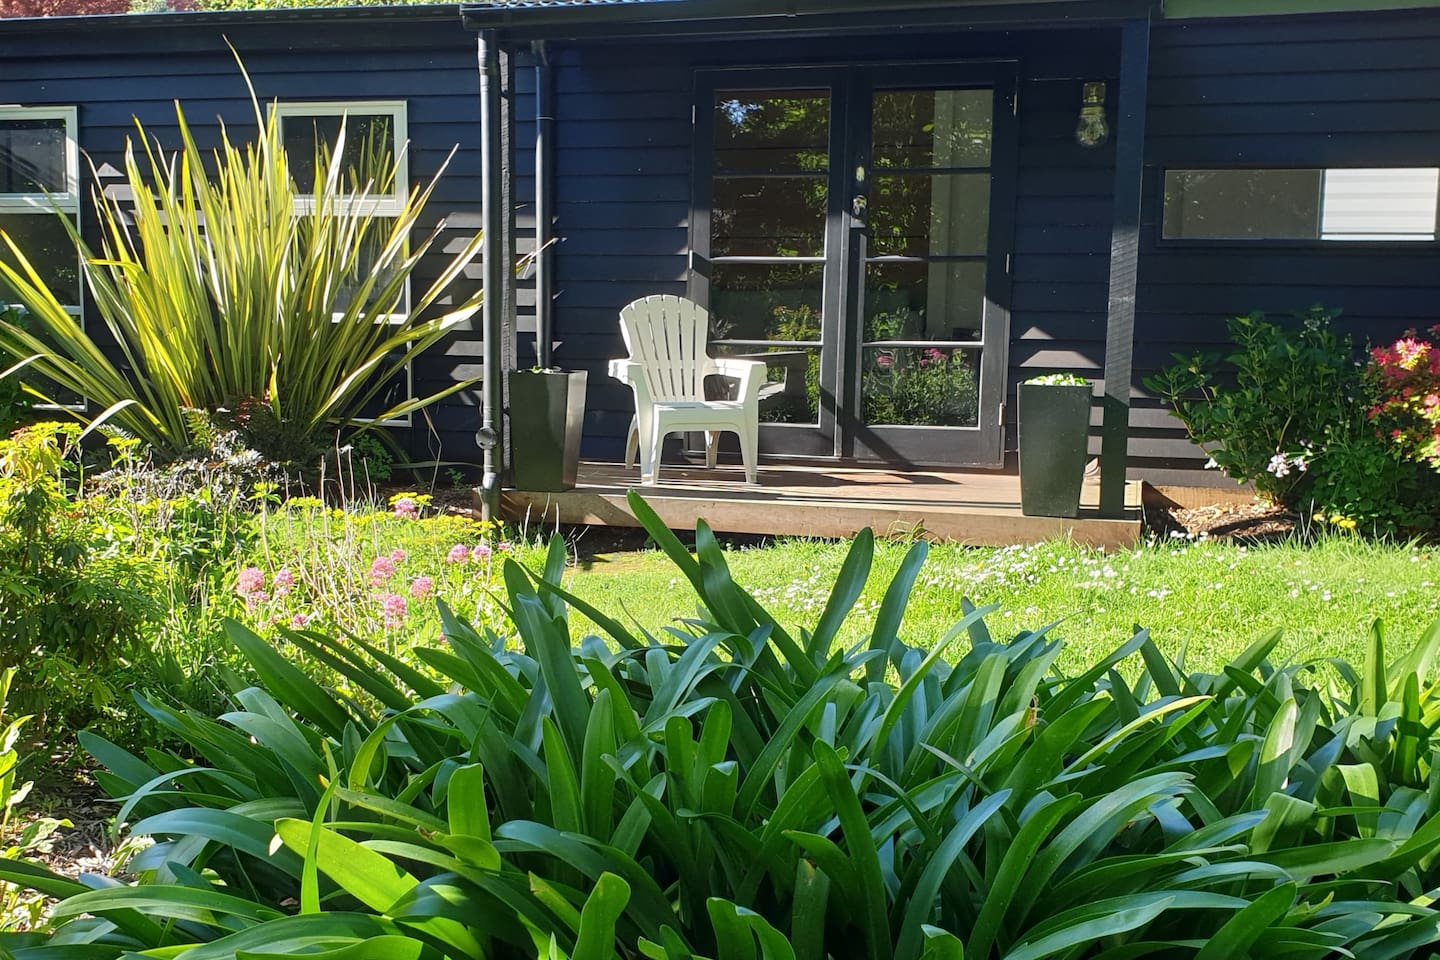 Your own private garden where you can sit and enjoy all the incredible birds including kookaburras, king parrots, rosellas, lorikeets and so many more.